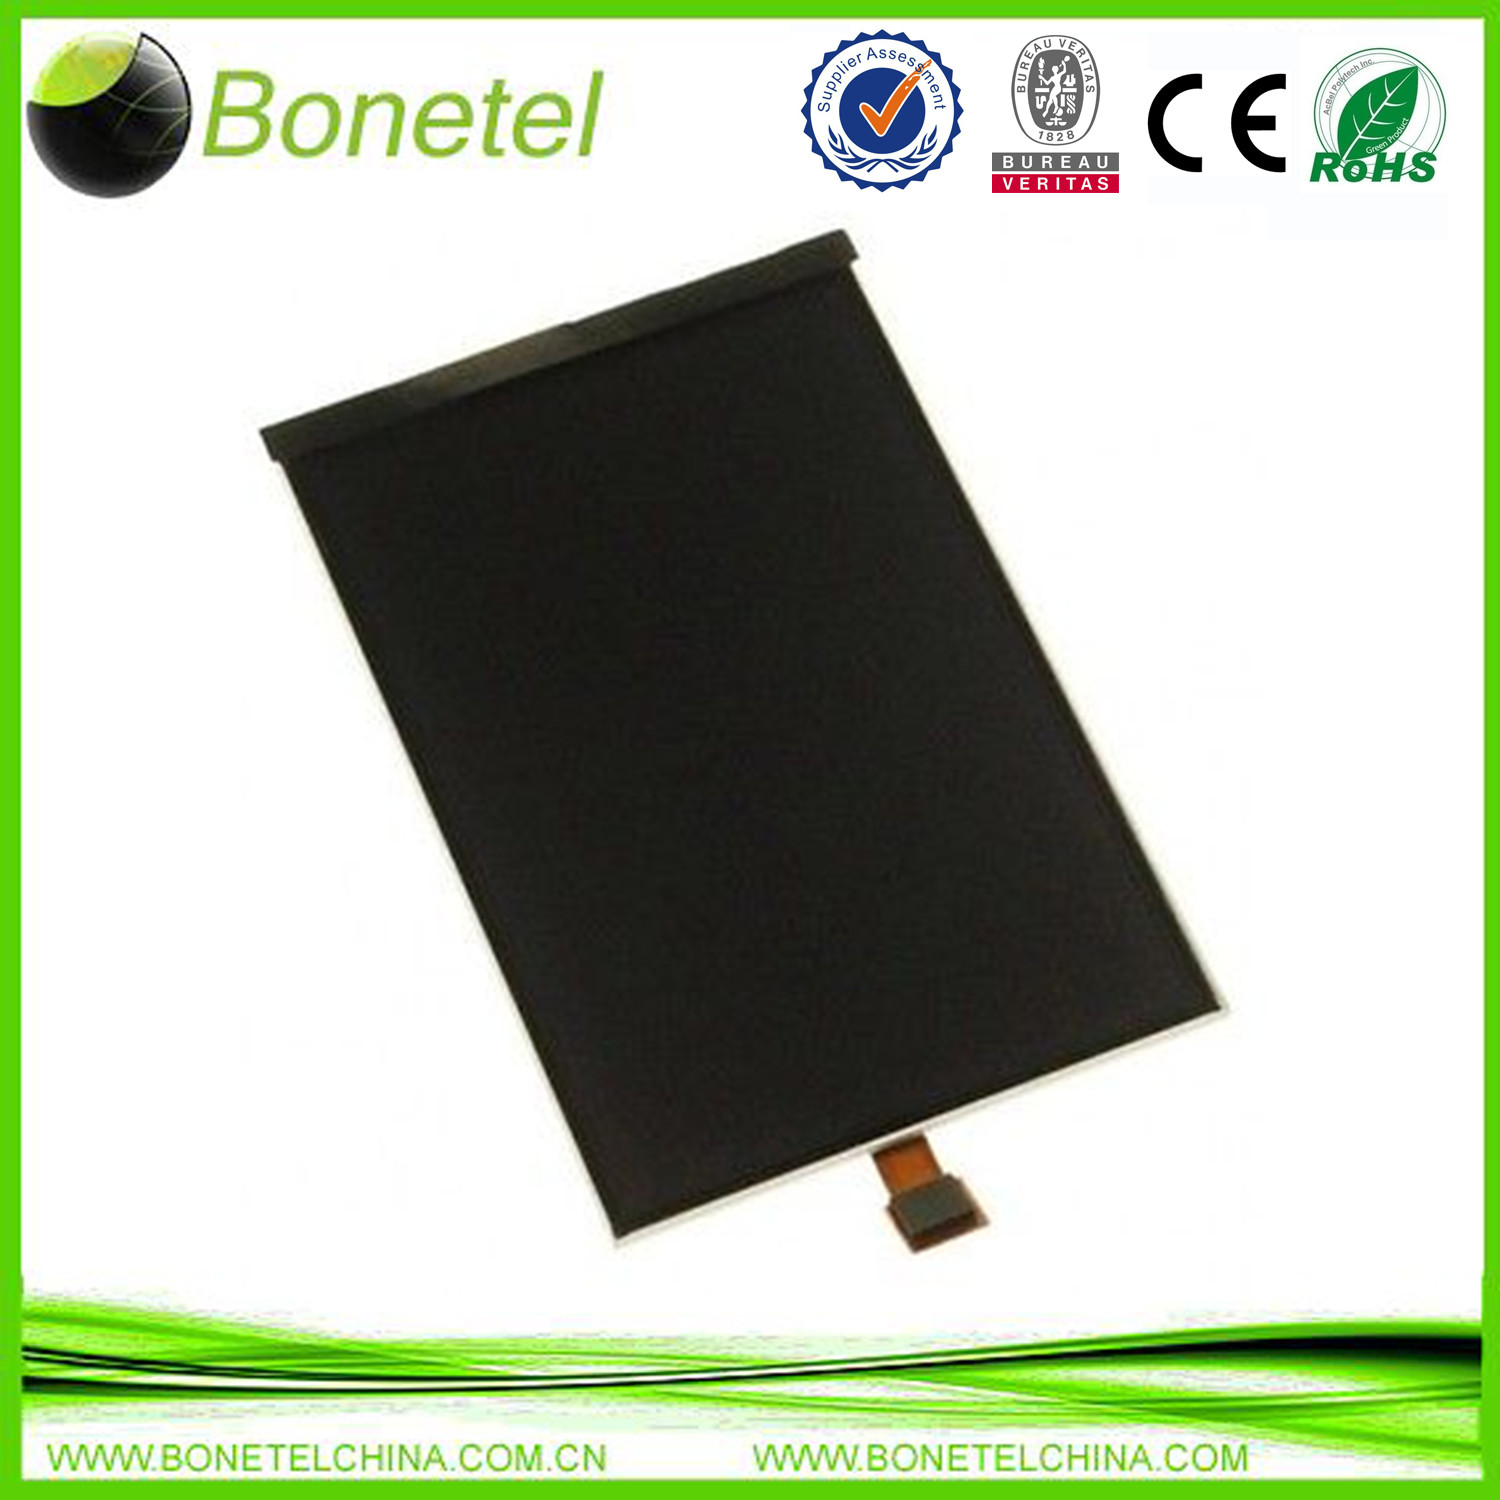 NEW LCD SCREEN DISPLAY For iPod Touch 3G 3rd GEN